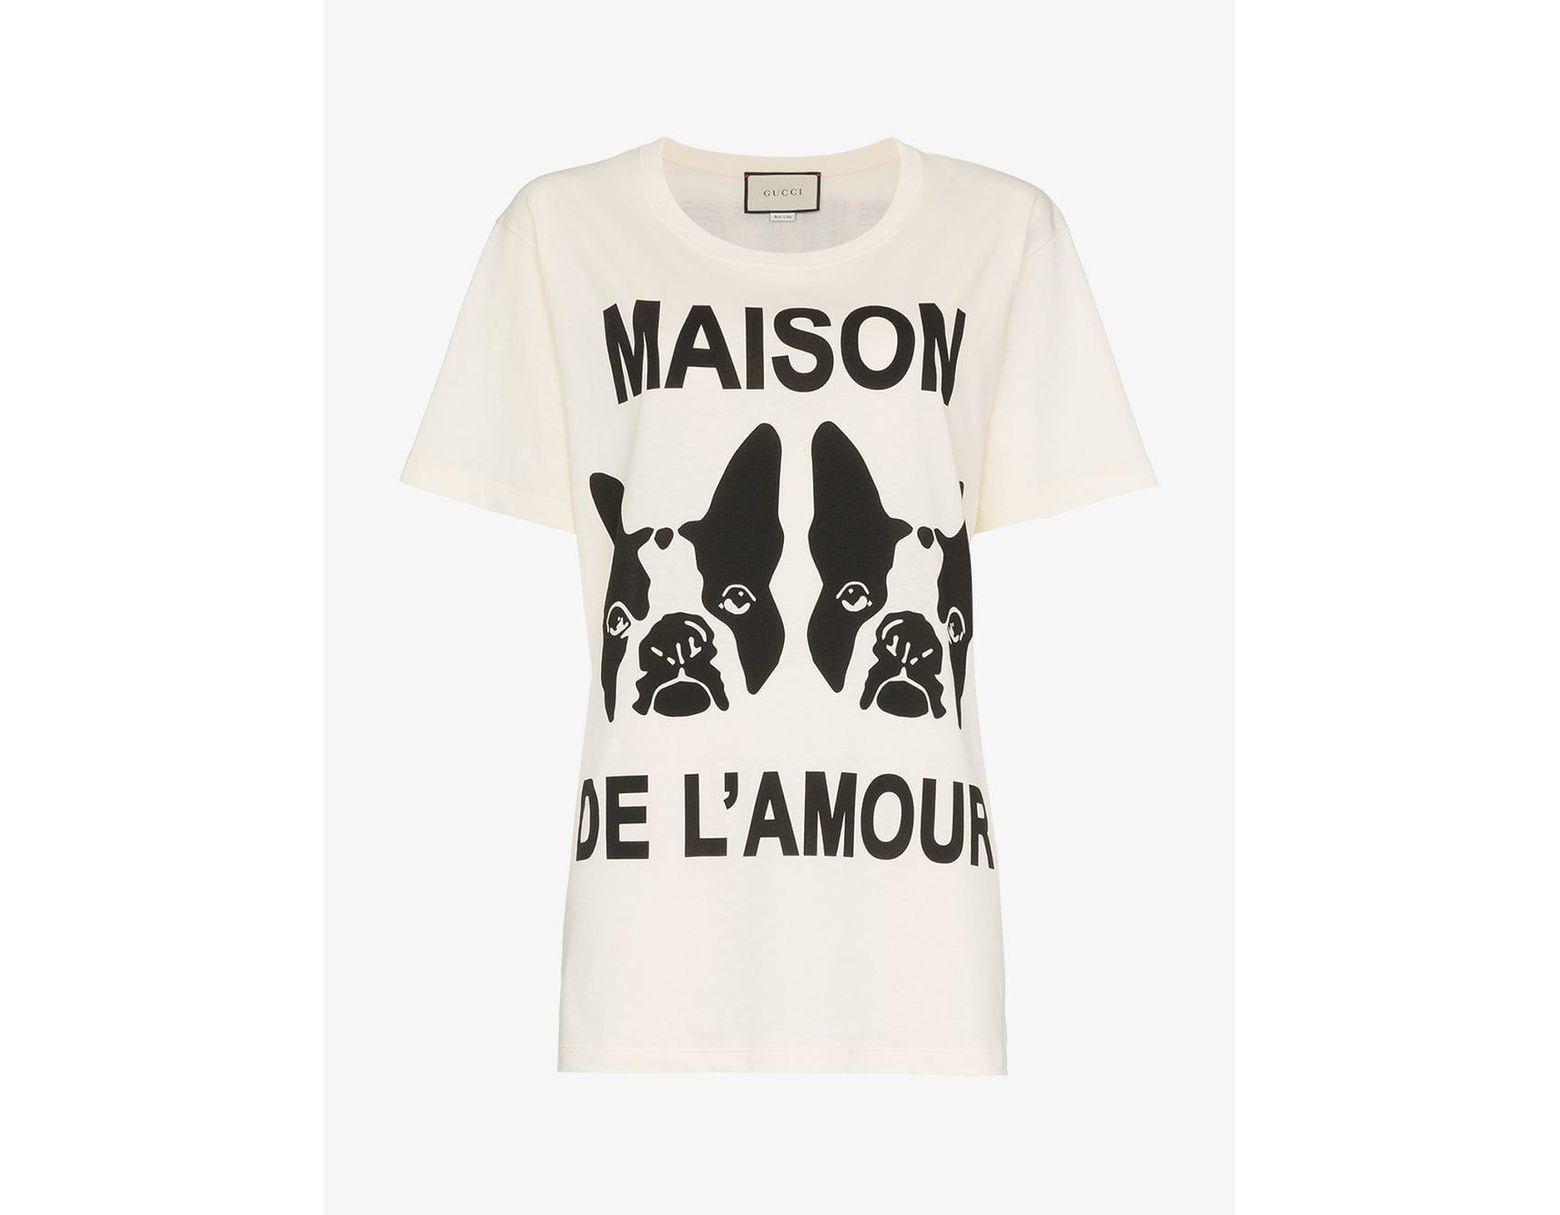 054f6aa08a Gucci Maison De L'amour T-shirt With Bosco And Orso in White - Save 50% -  Lyst